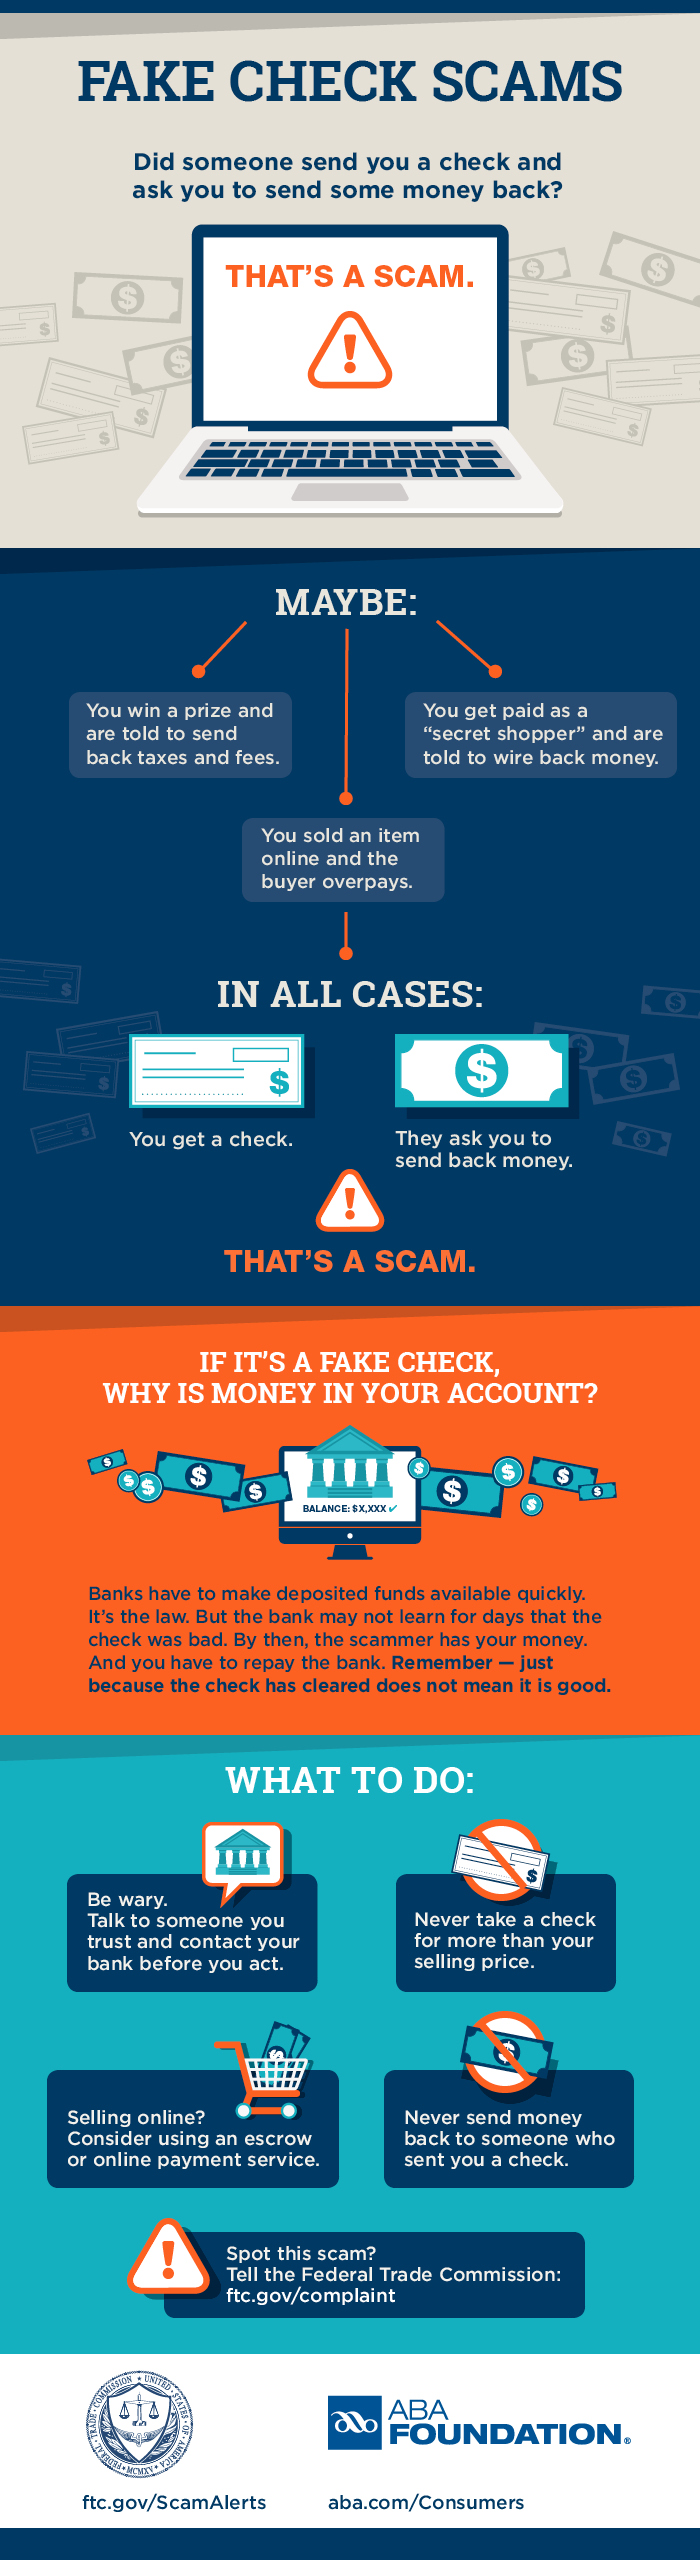 Anatomy of a fake check scam | FTC Consumer Information